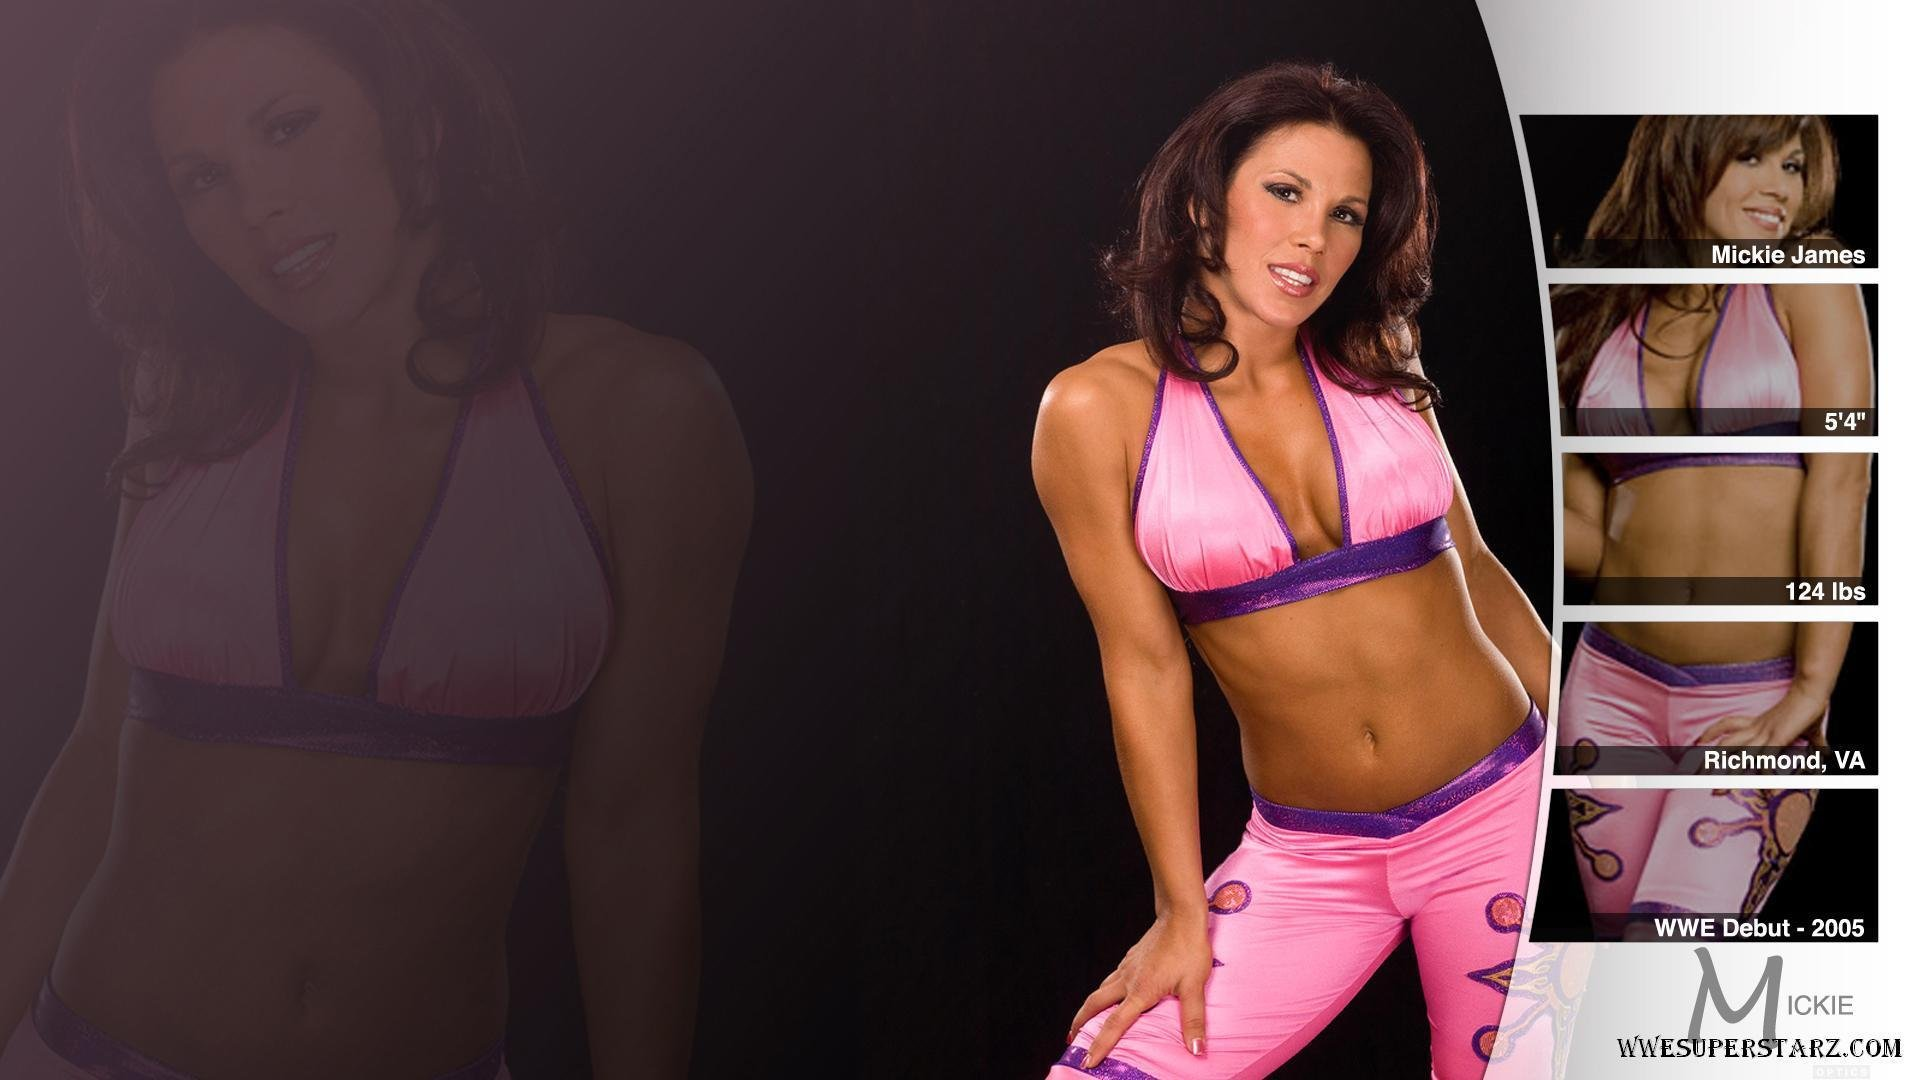 Mickie James Wallpaper Mickie James Wallpaper 1920x1080